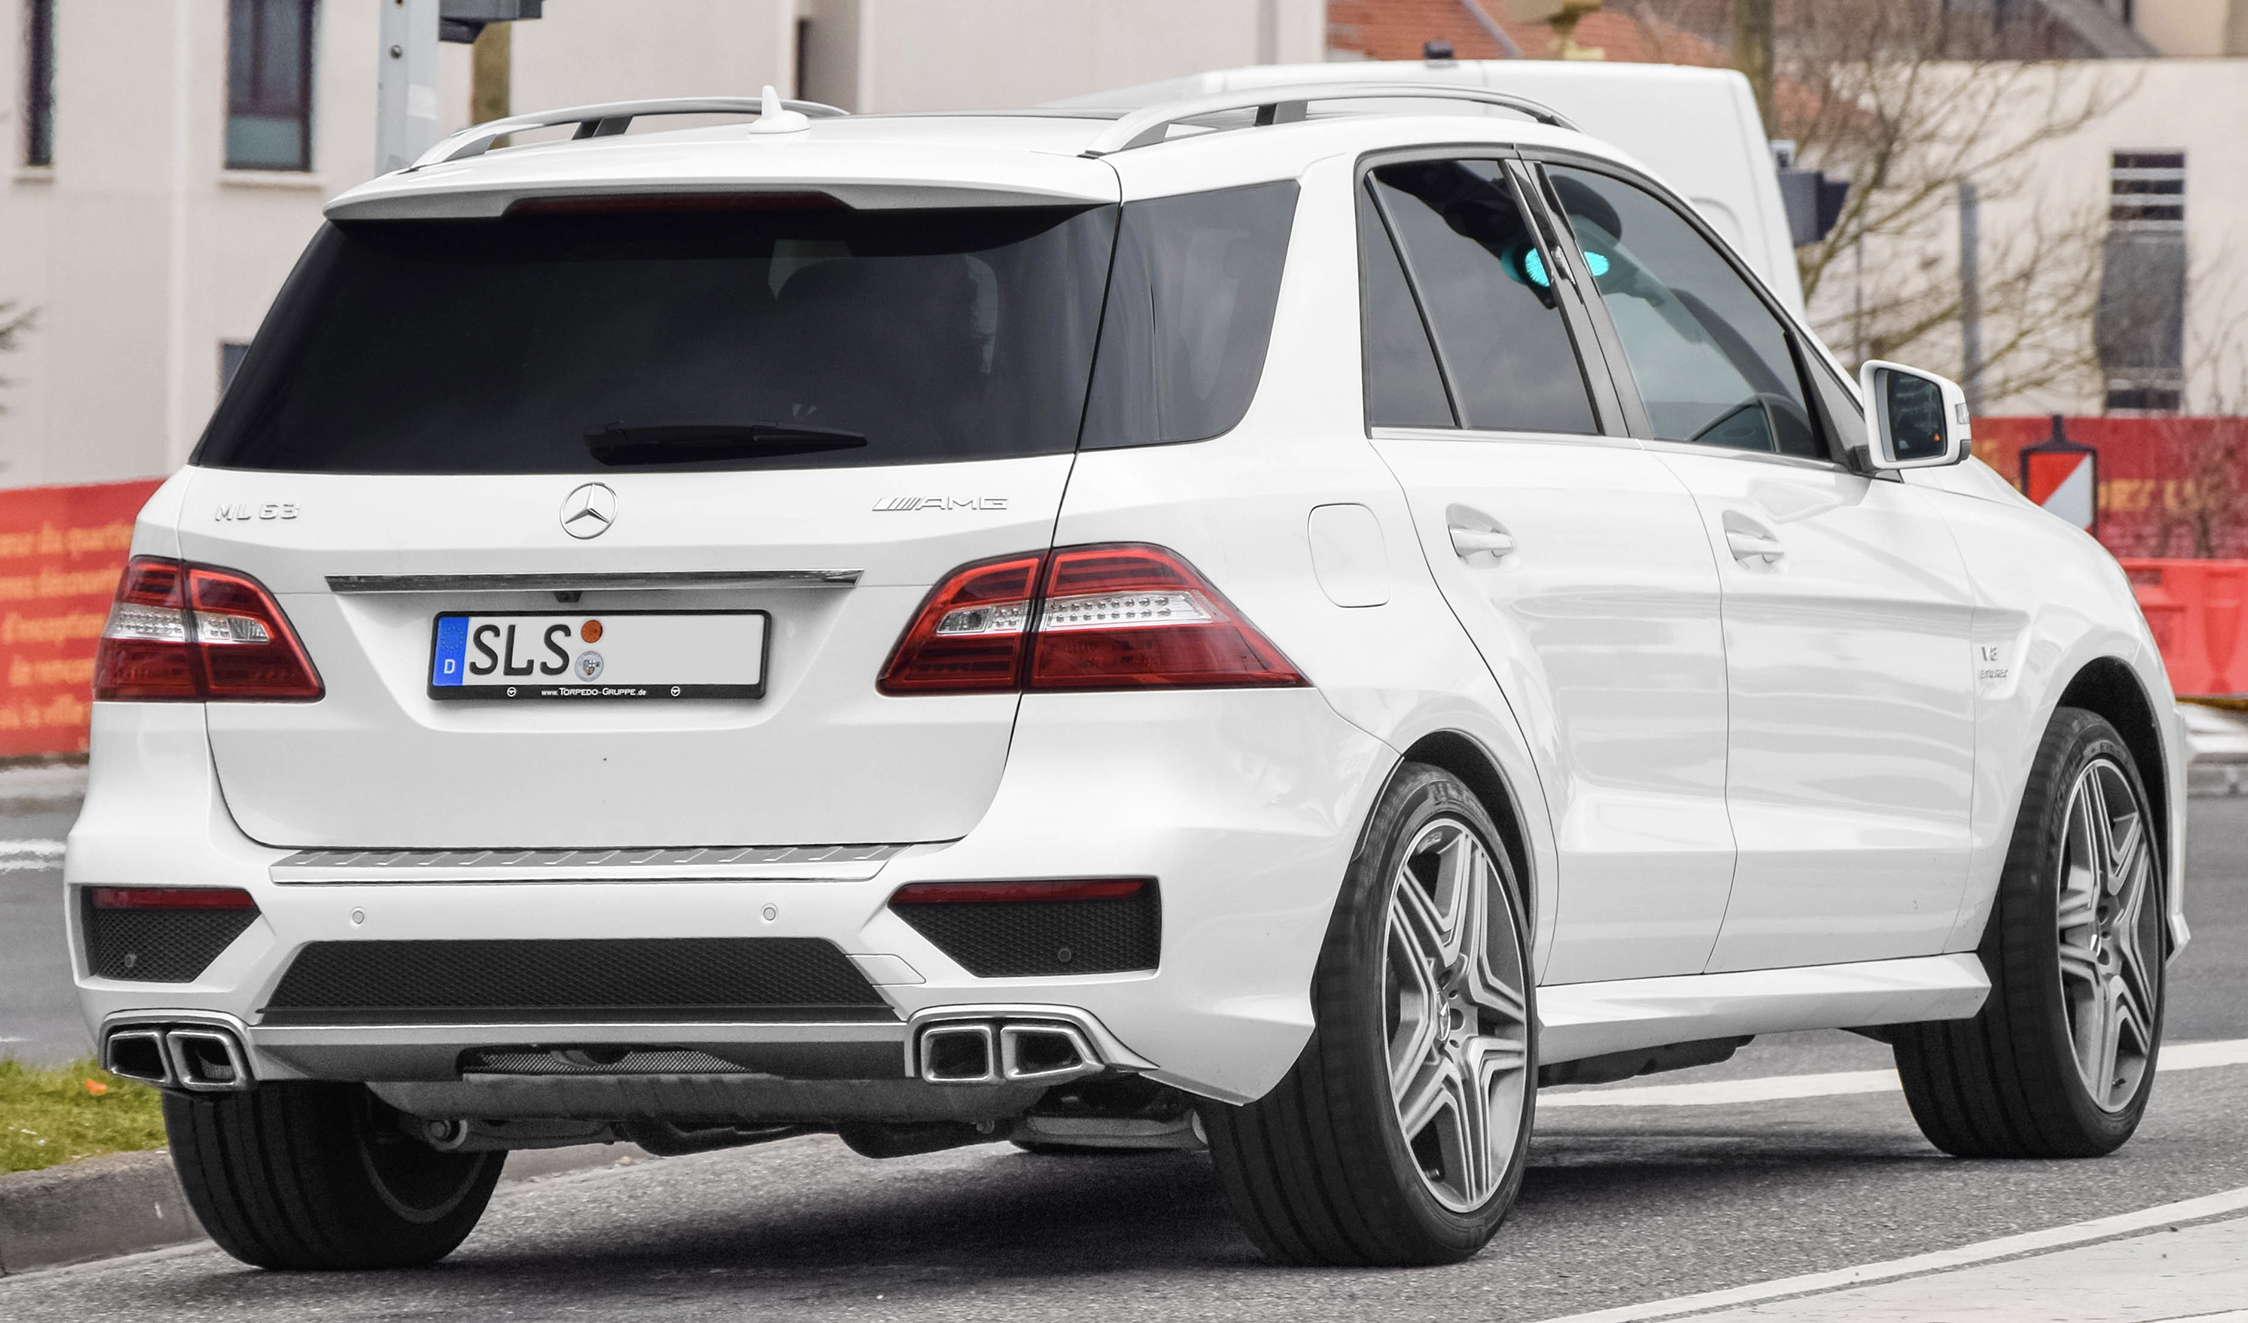 File:Mercedes Benz ML 63 AMG.jpg Wikimedia Commons